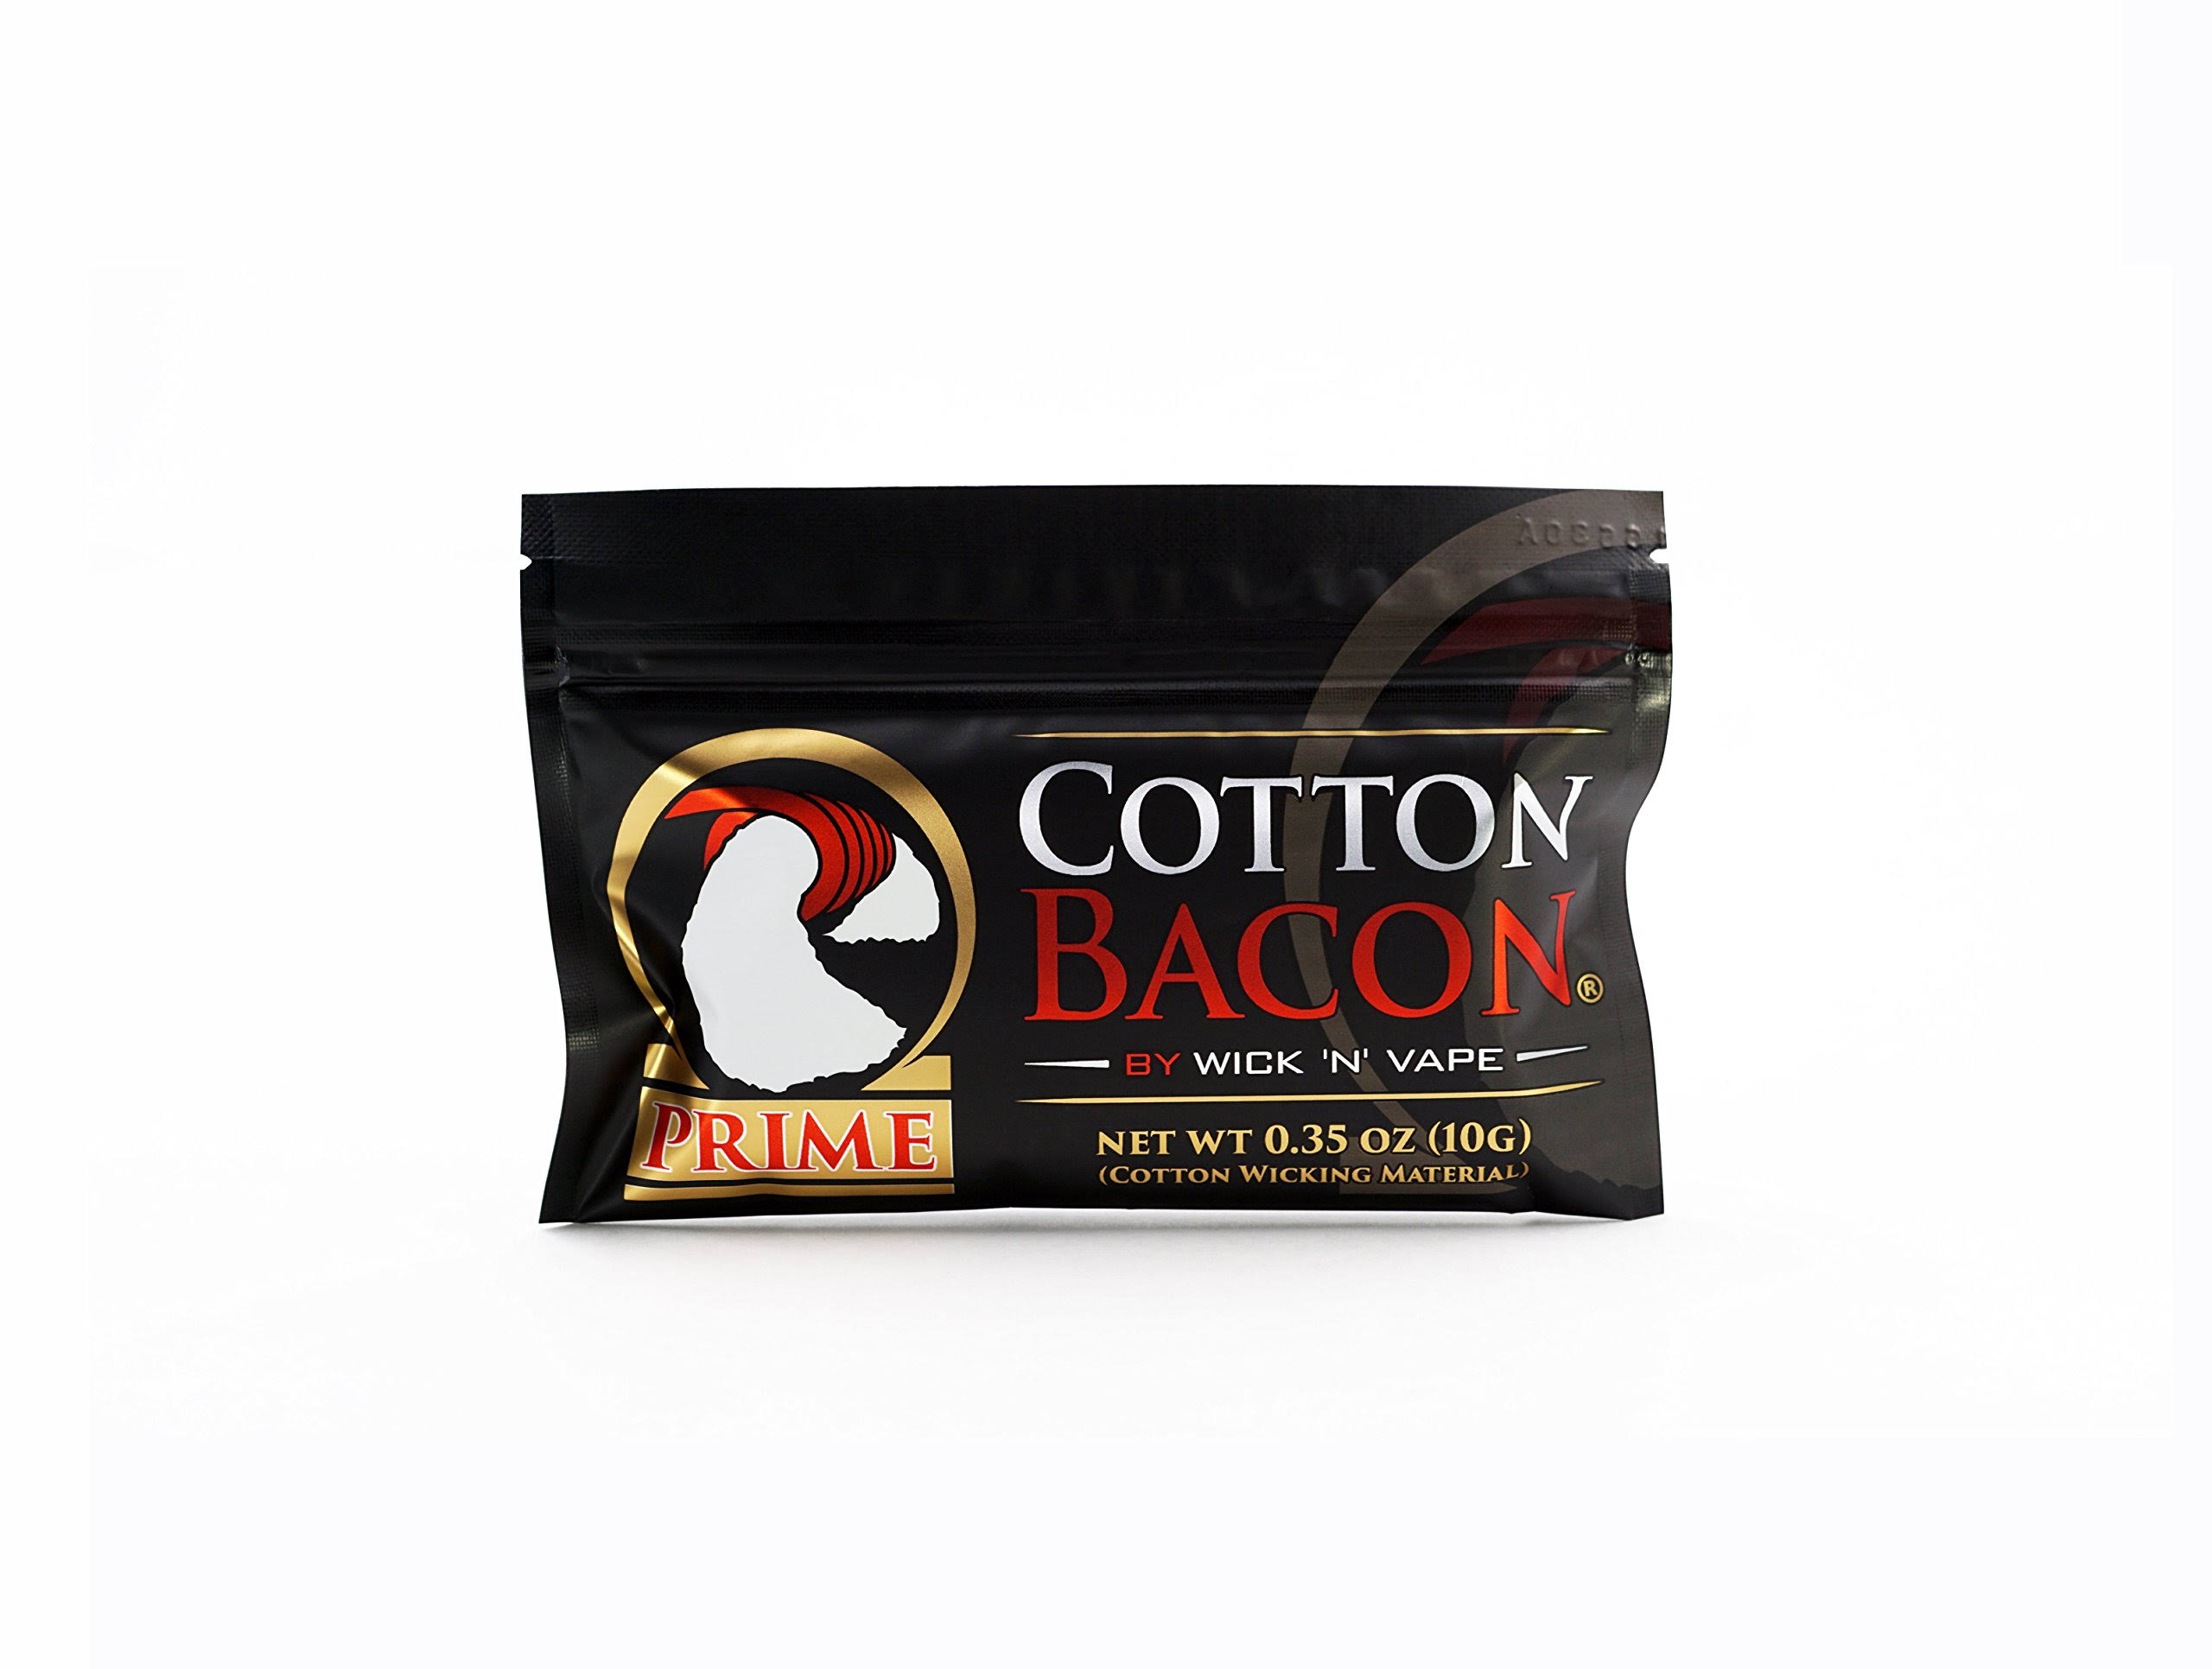 Cotton Bacon Prime by Wick 'n' Vape - Brand New Cotton Bacon - Super Absorbent